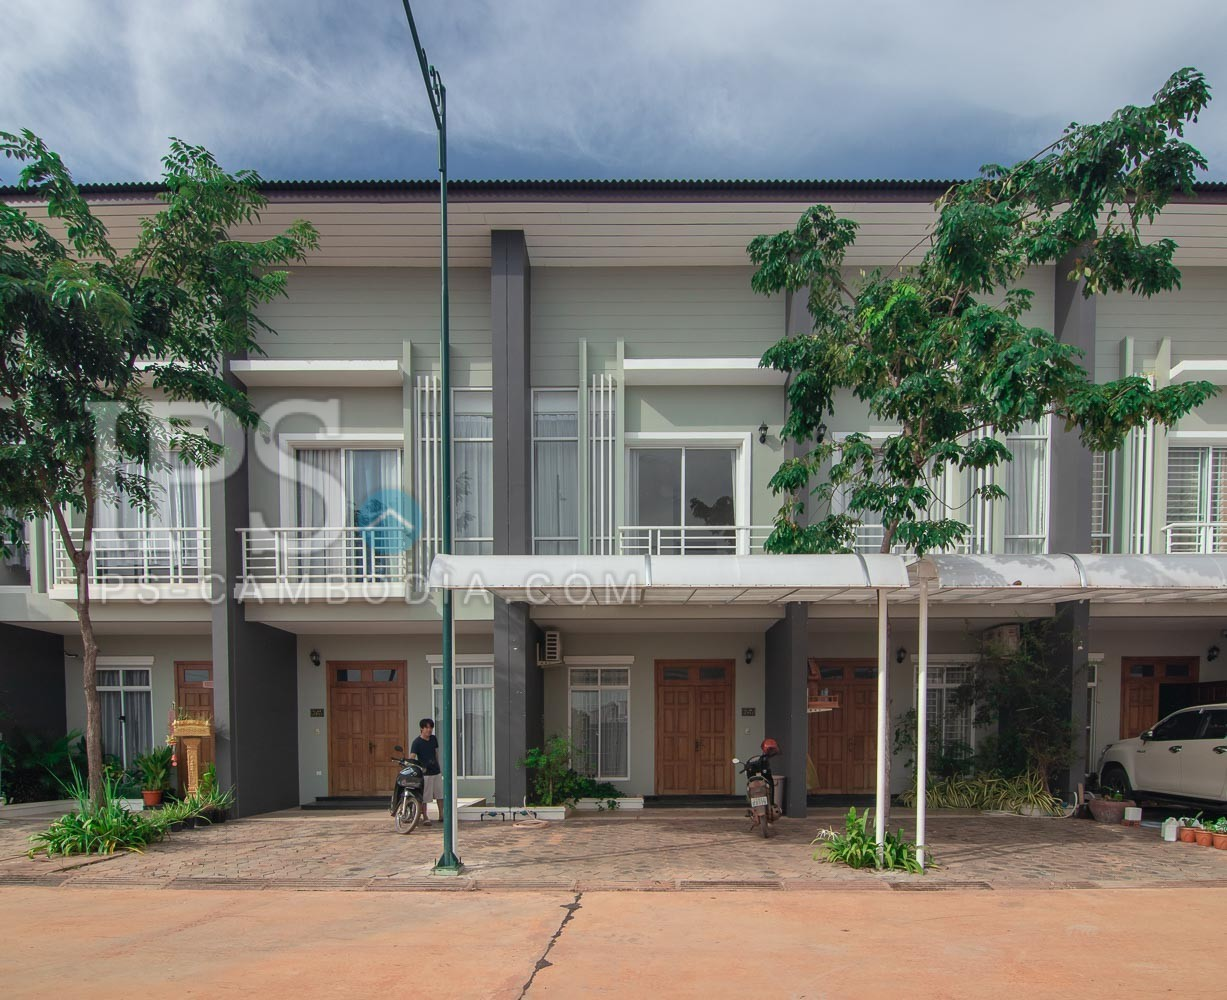 2 Bedroom House For Rent - Svay Dangkum, Siem Reap